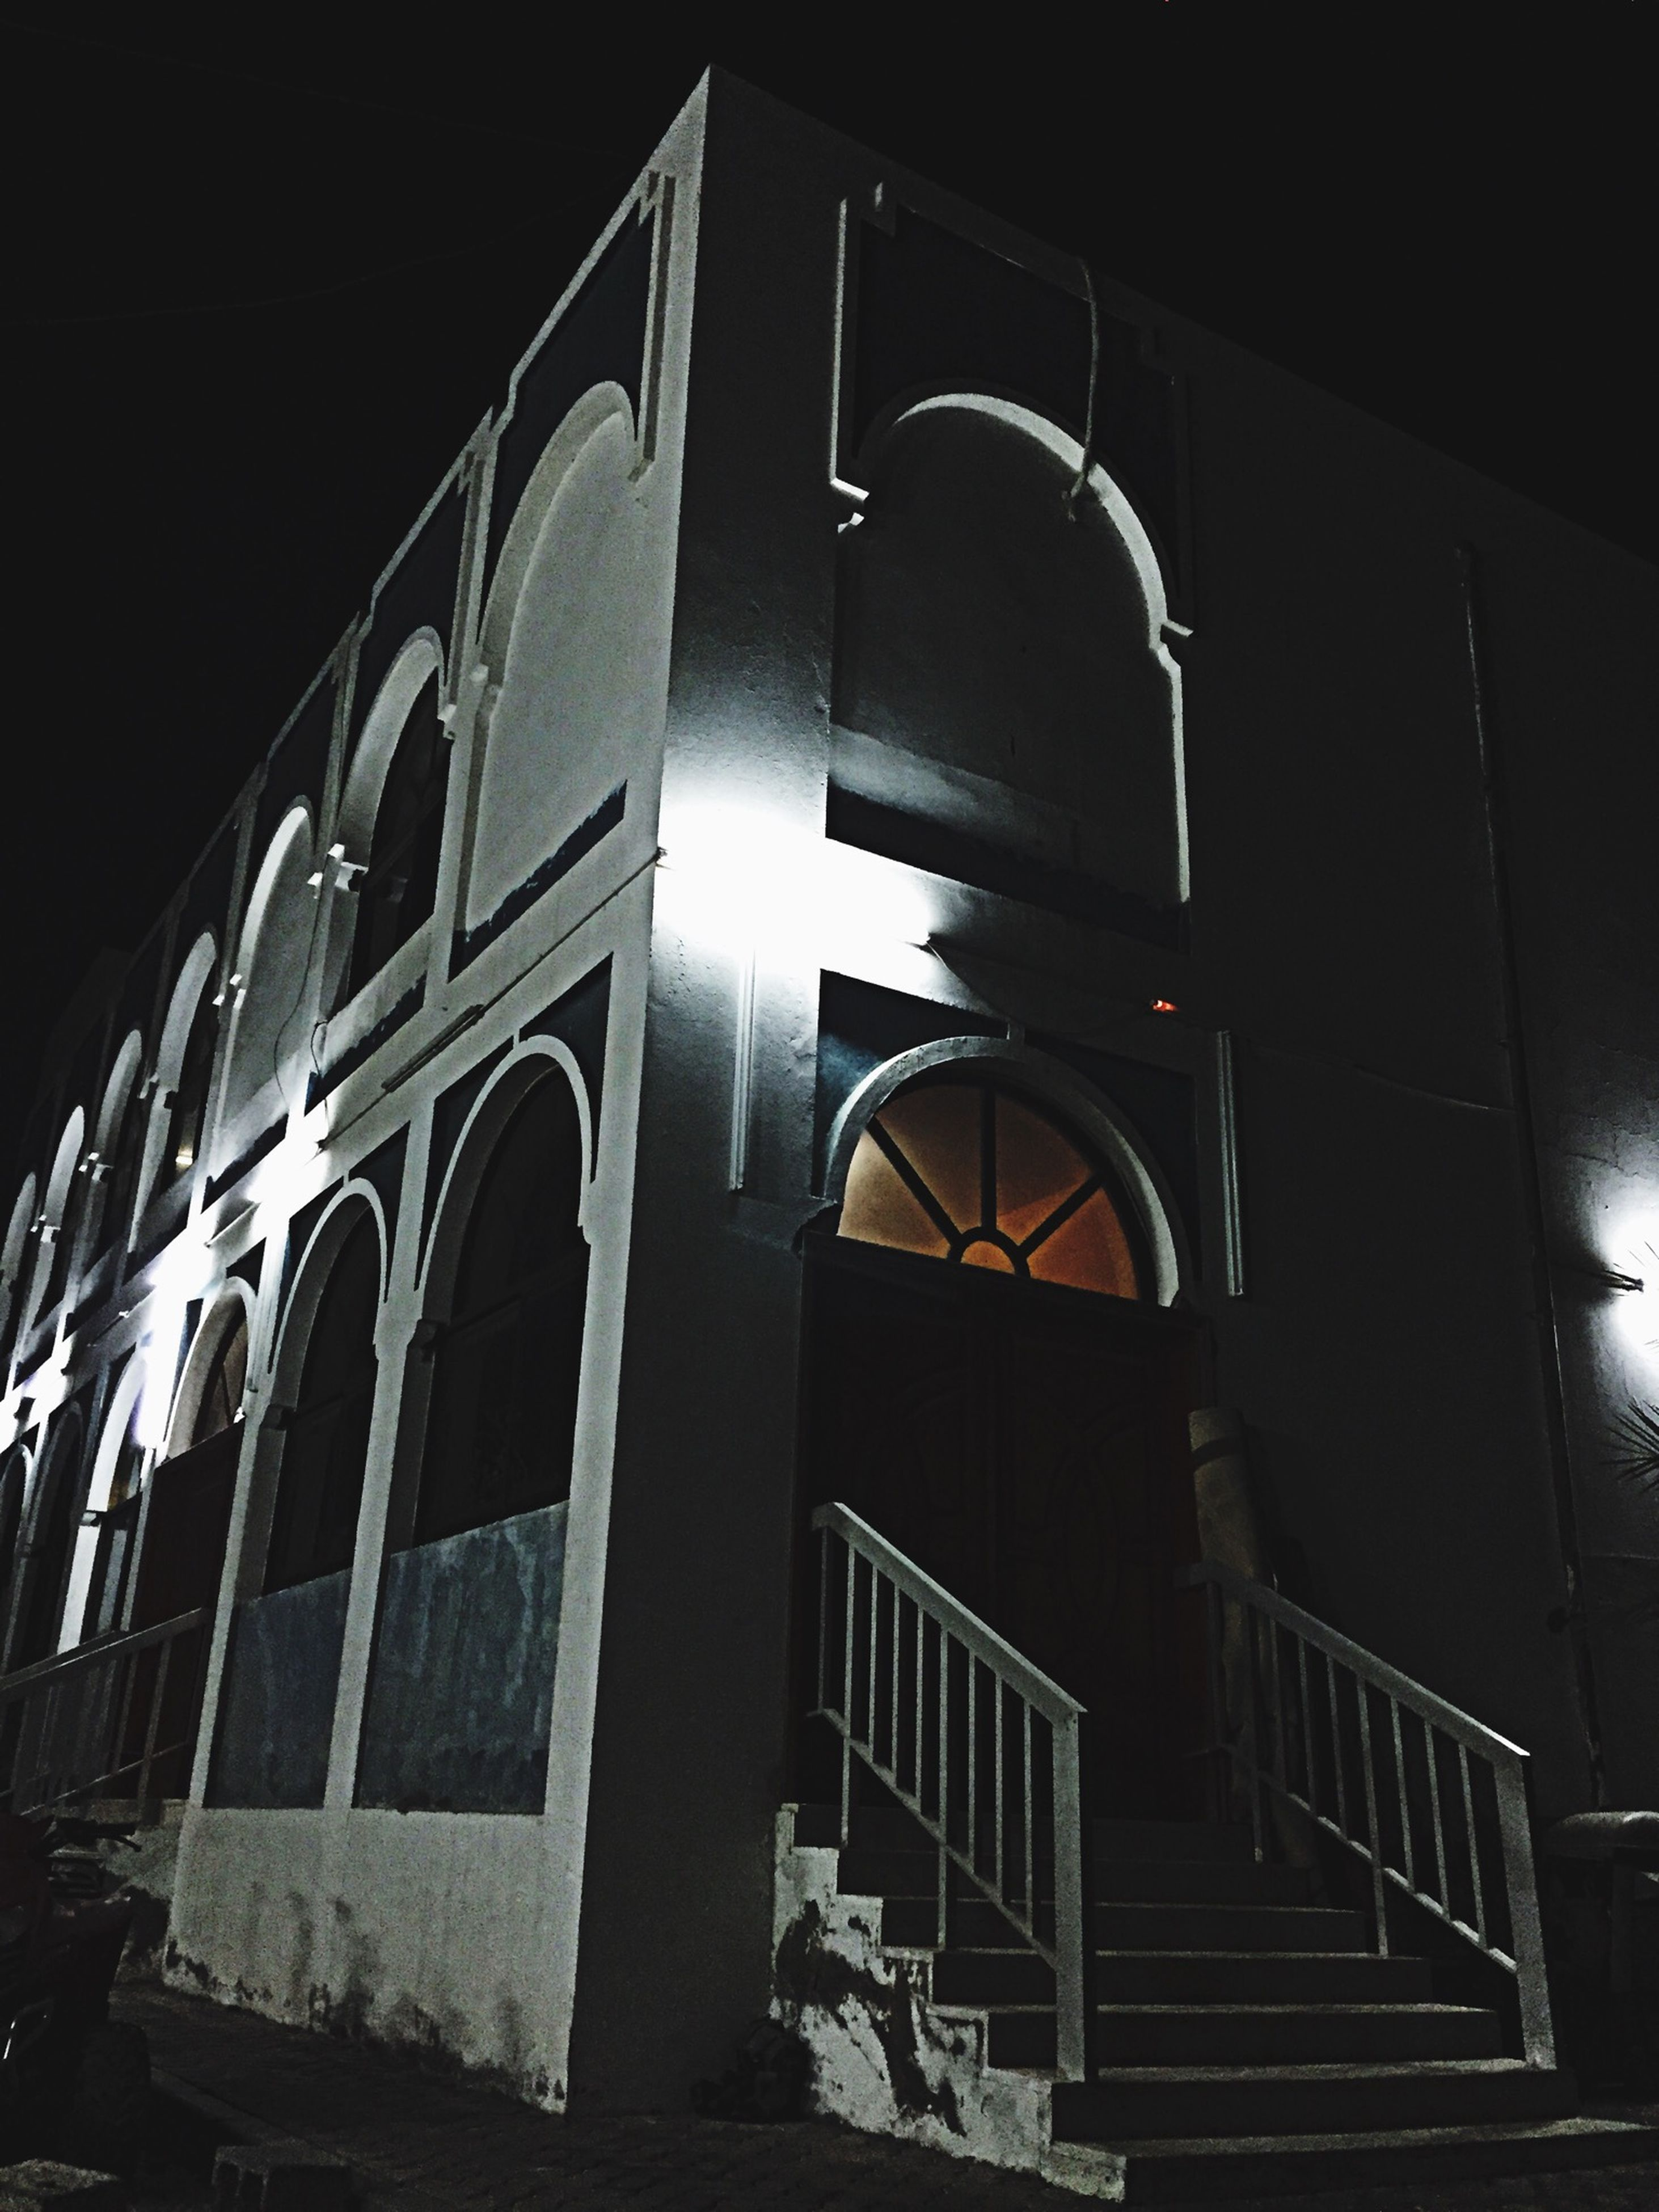 architecture, built structure, building exterior, low angle view, illuminated, night, building, window, arch, no people, lighting equipment, railing, outdoors, city, sky, exterior, modern, residential building, architectural feature